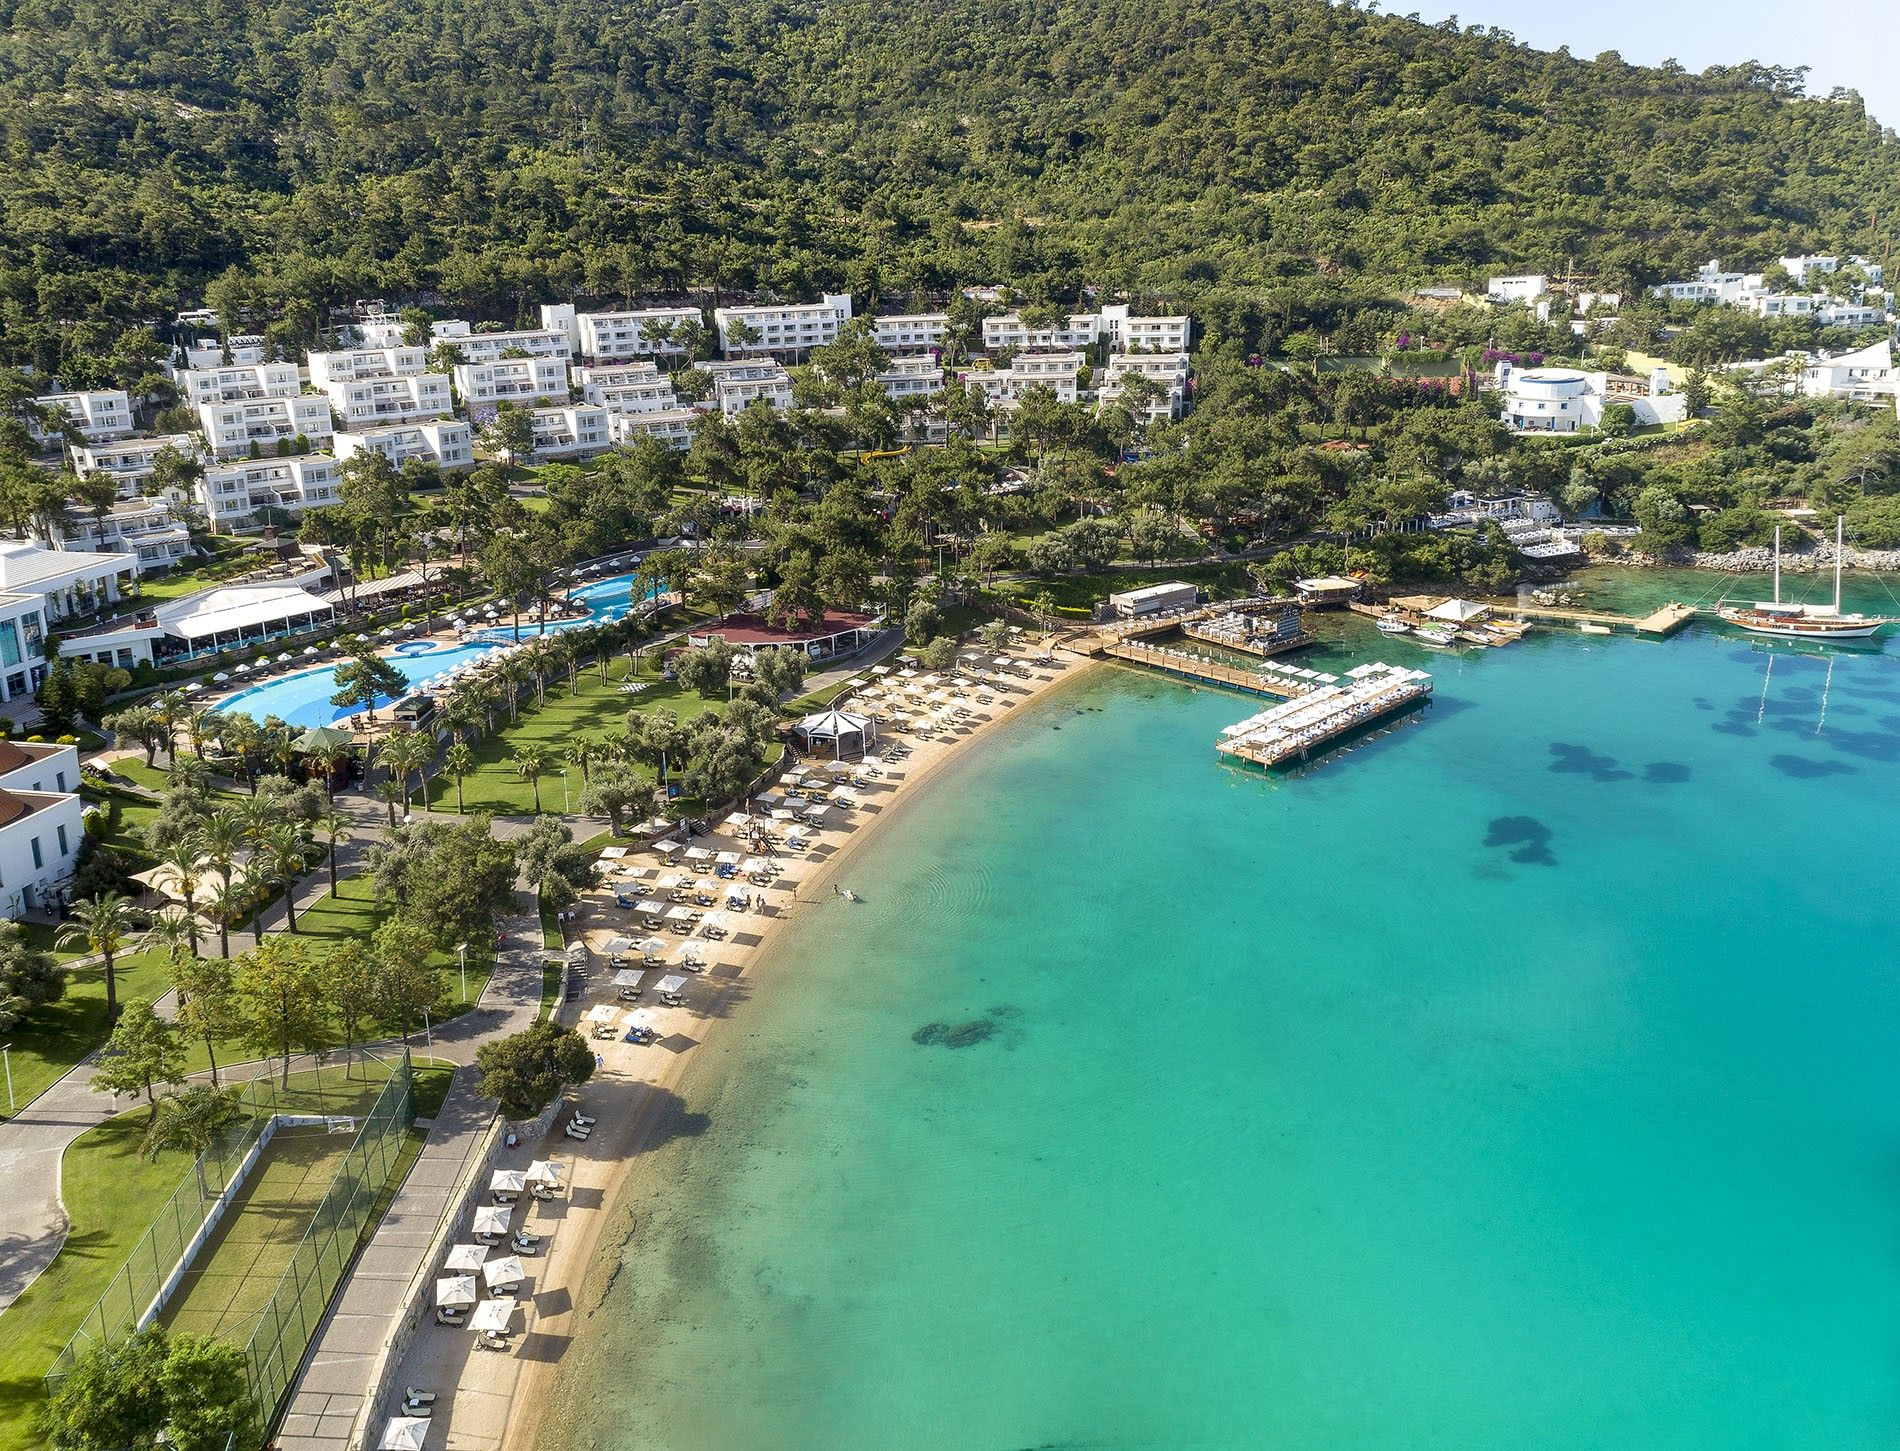 Rixos Premium Bodrum is ideally located on the Turkish Riviera, also known as the Turquoise Coast.